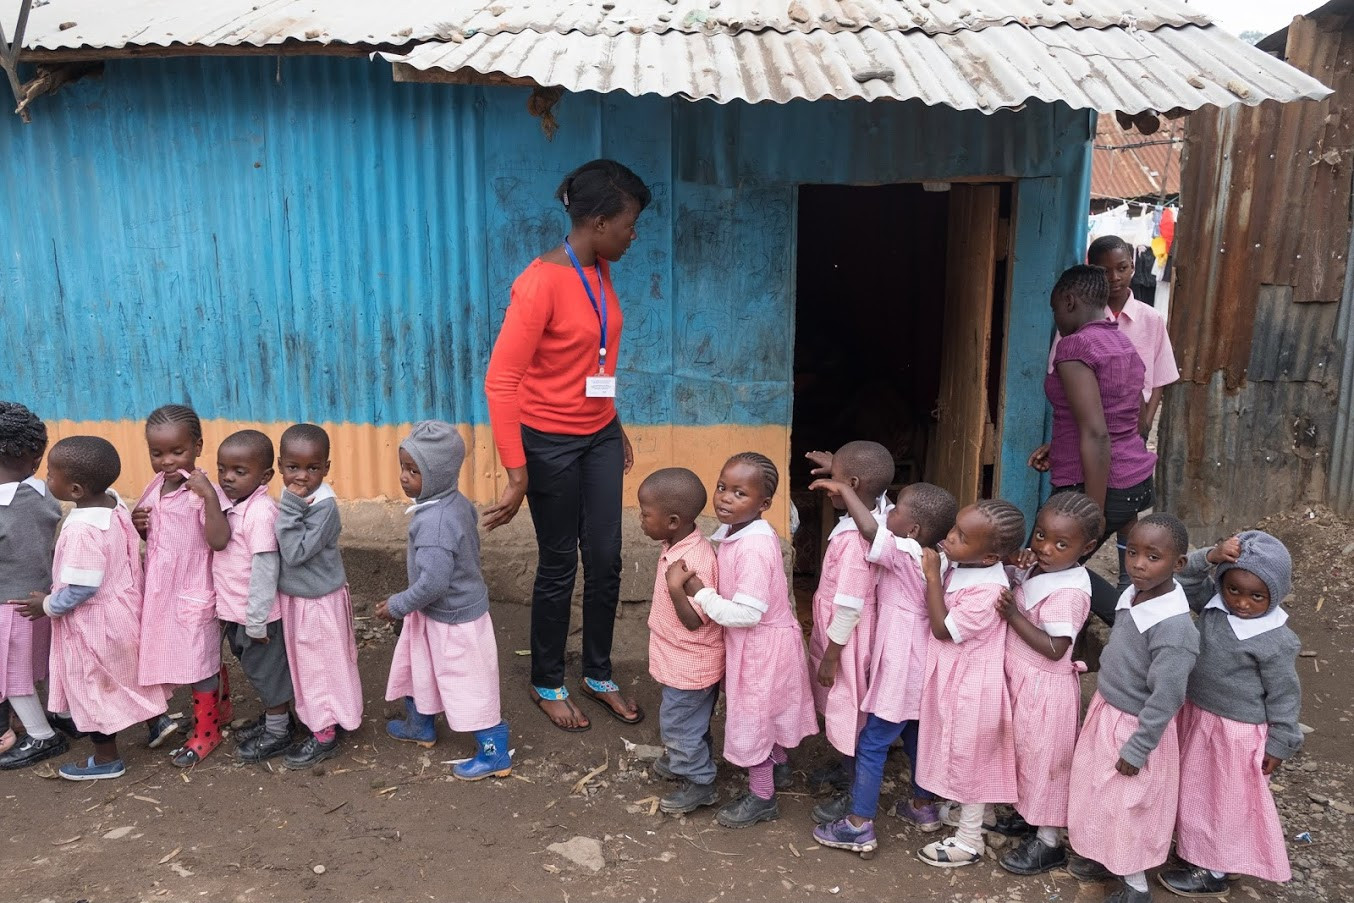 NO electricity & NO running water at school or at home in Mathare!!